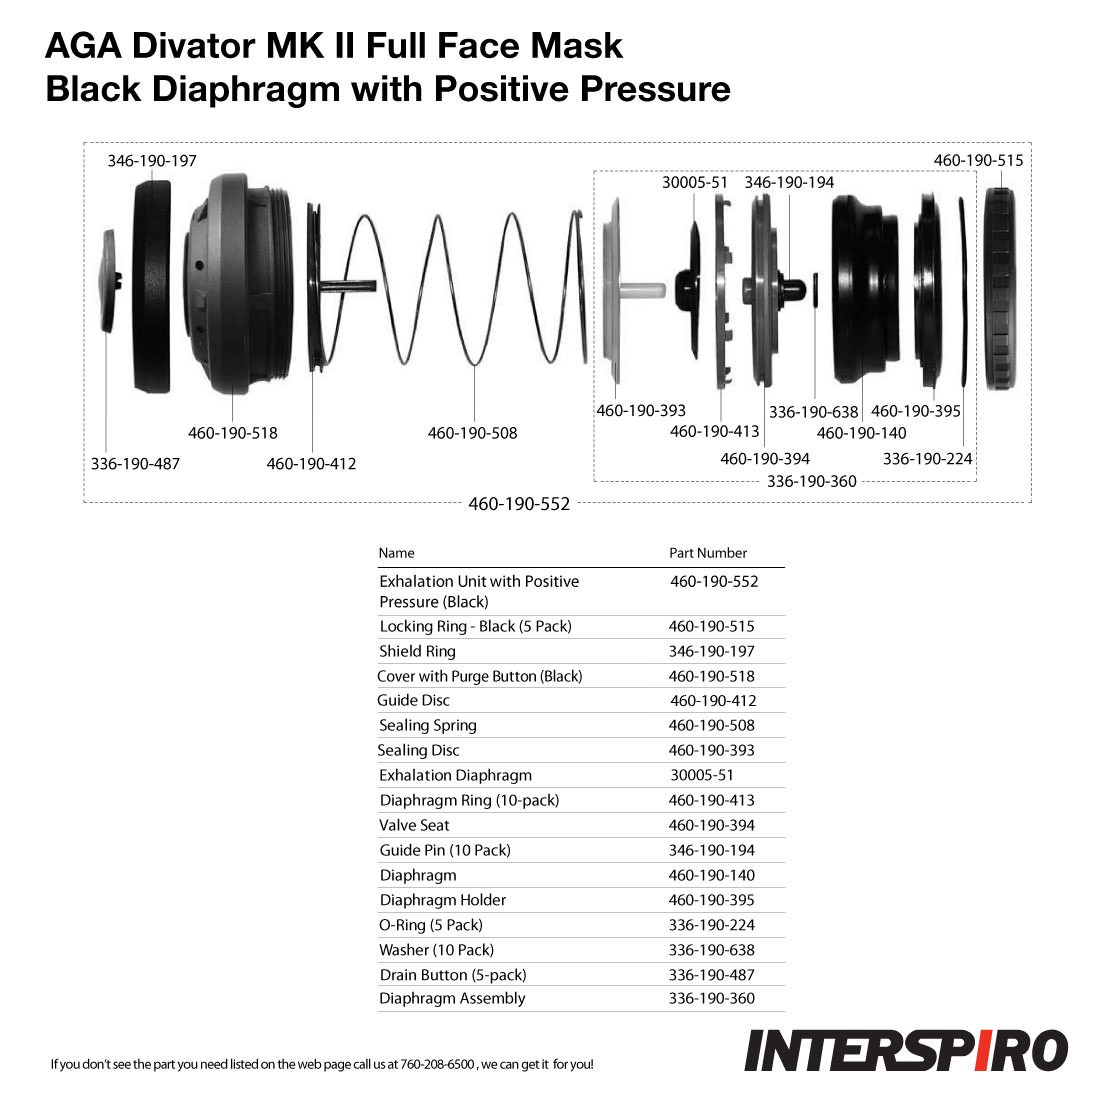 Interspiro AGA Divator MK II Full Face Mask with Positive Pressure Regulator - Silicone - Black - Diaphragm